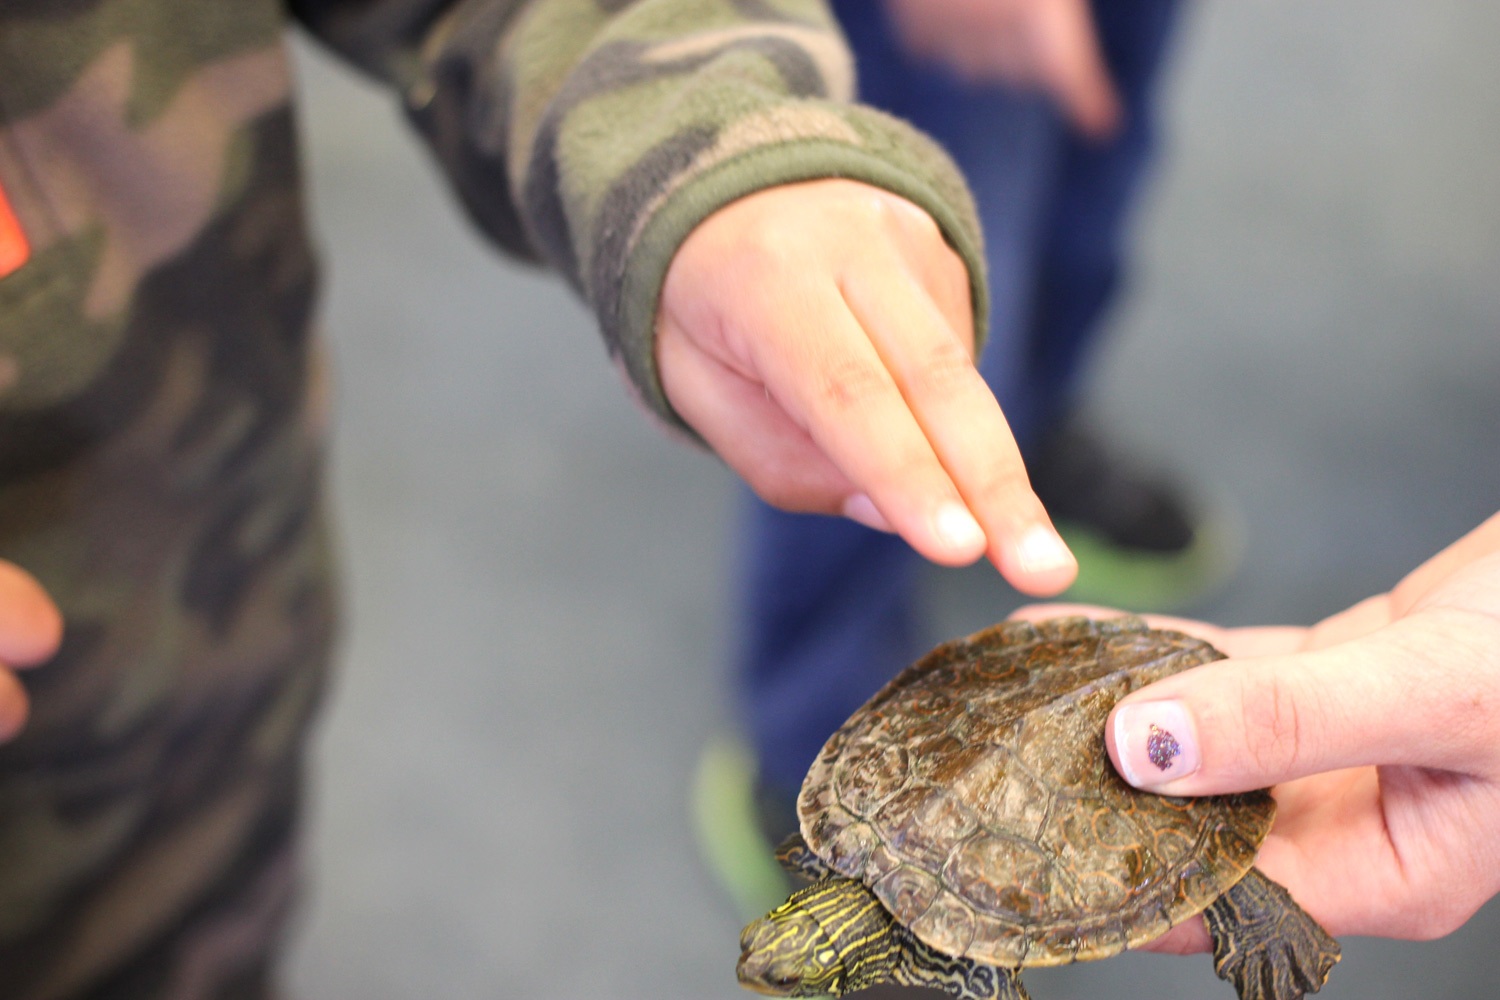 Teaching the children about the shell. Did you know a turtle can feel when you touch their shell? Their shell's carapace actually grows from their skeletal structure so they are able to detect sensations similar to a bird's beak or your fingernail.